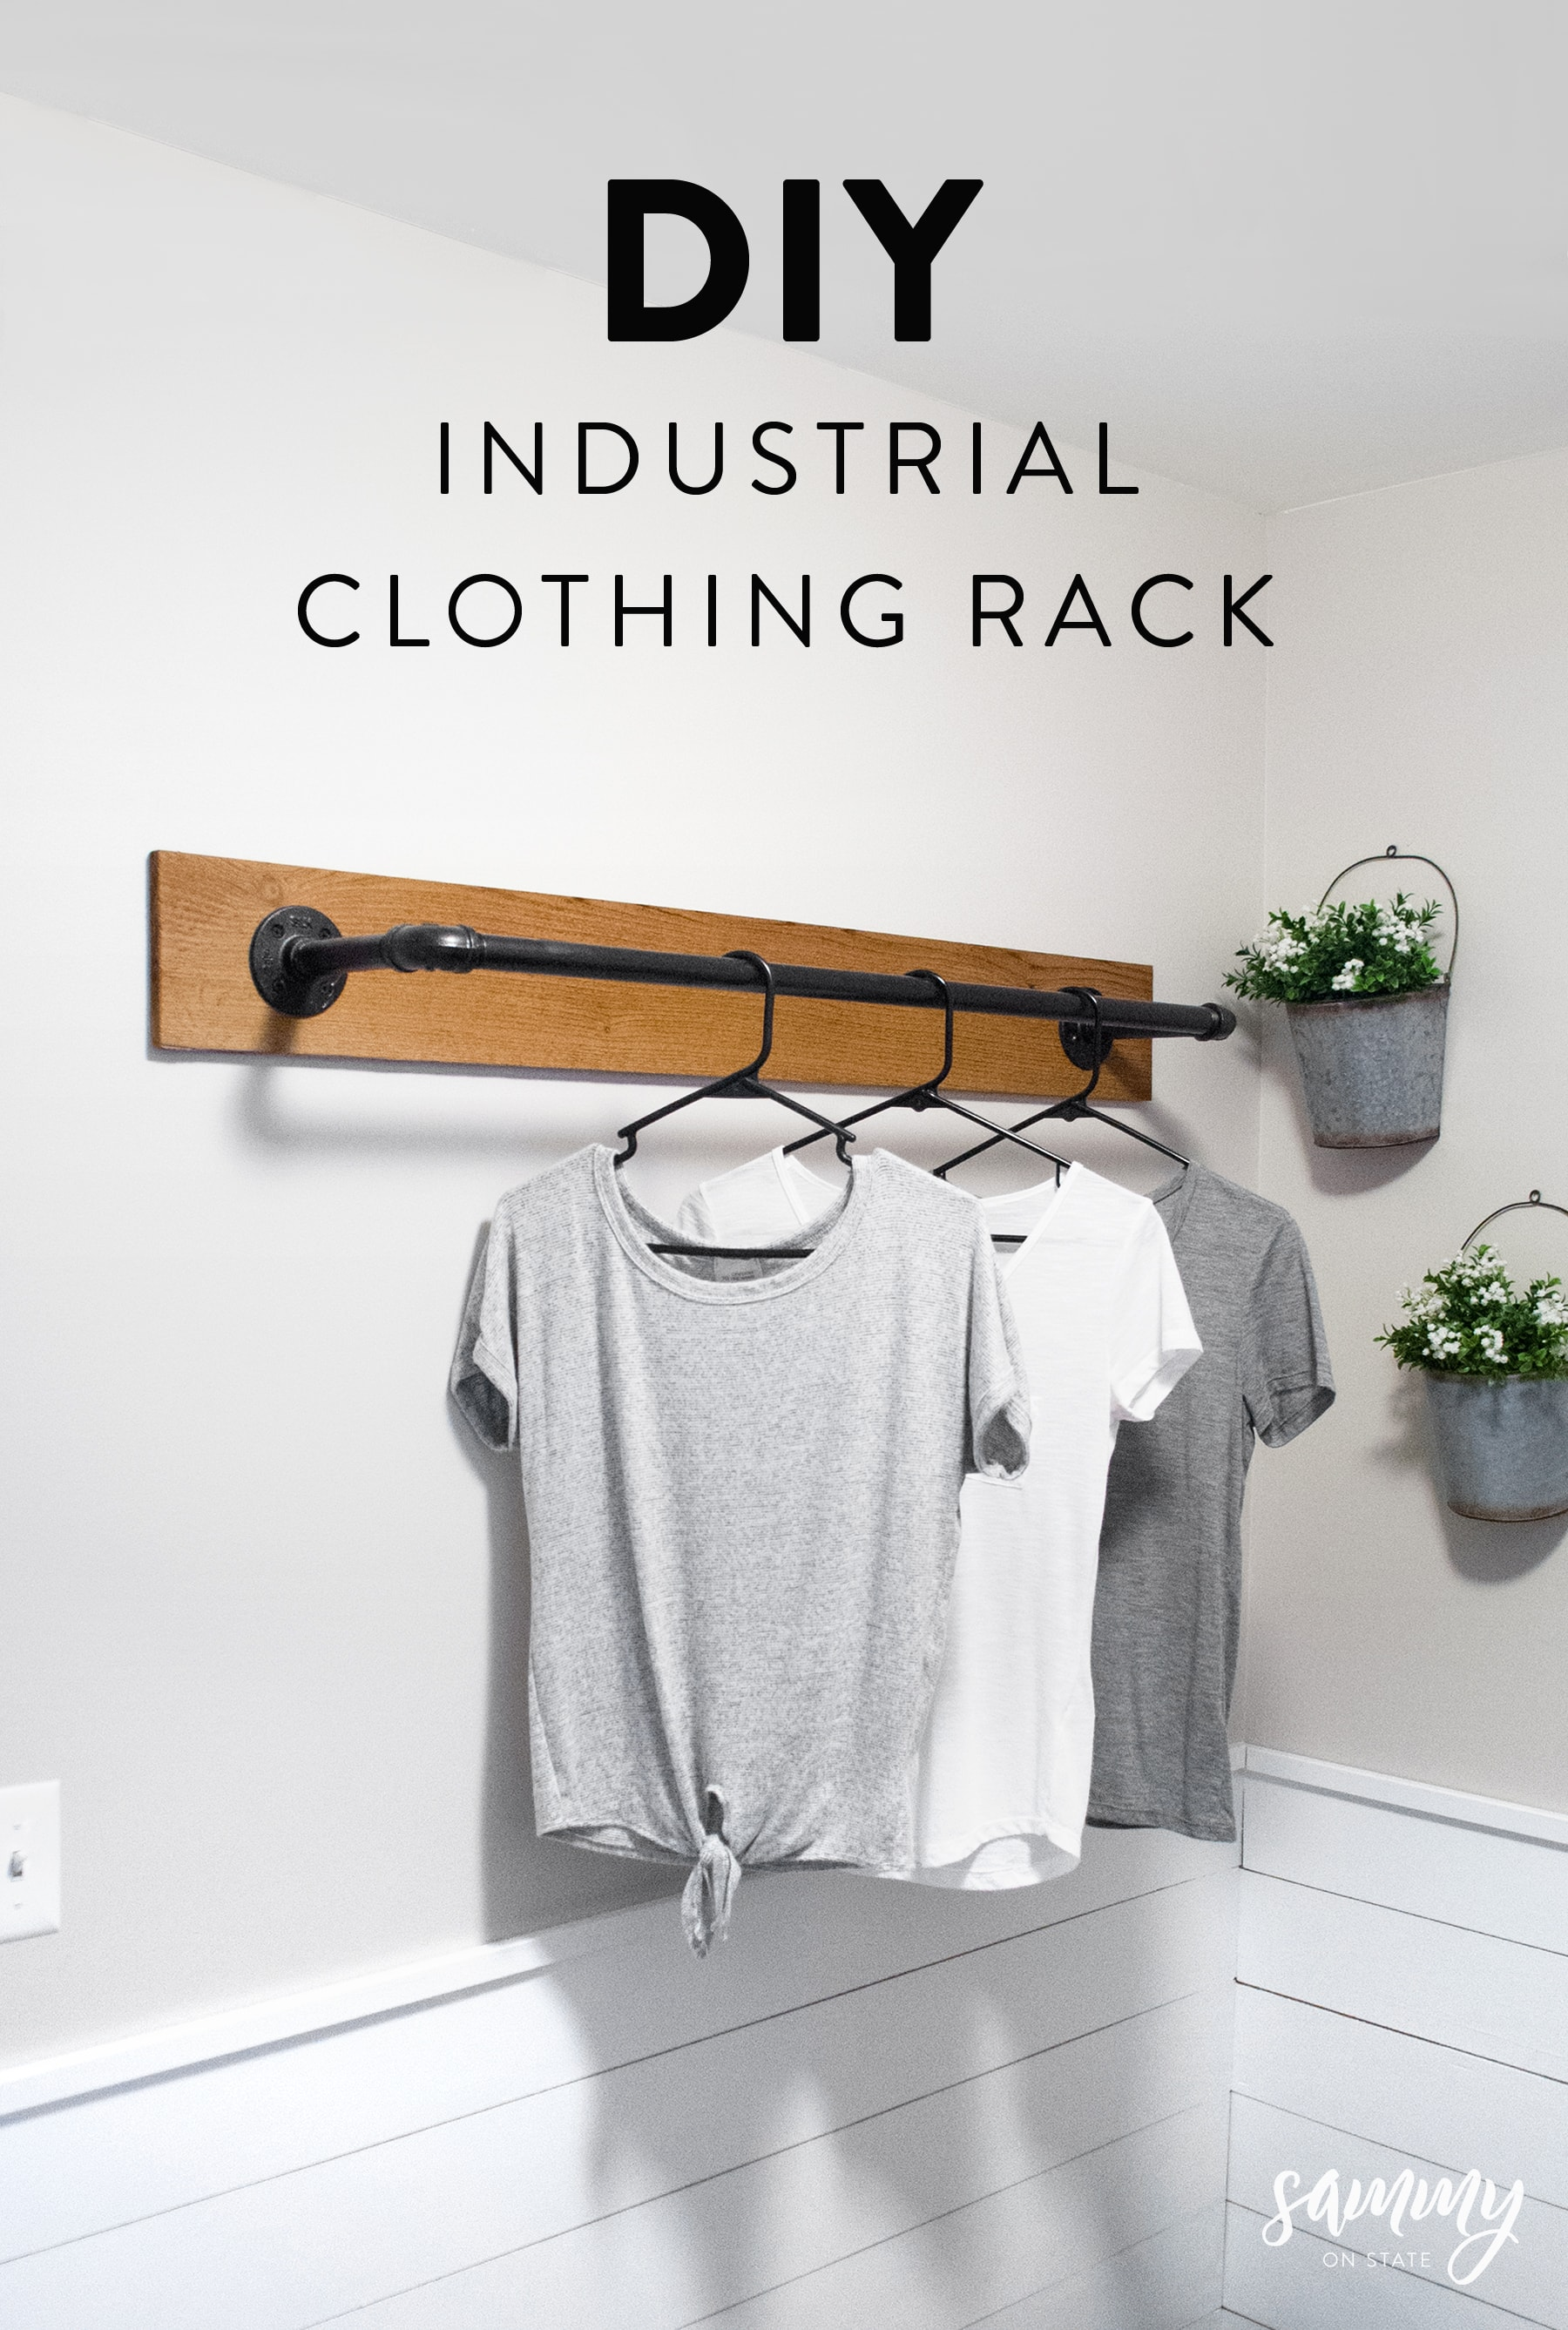 ClothingRack-Pinterest-min.jpg